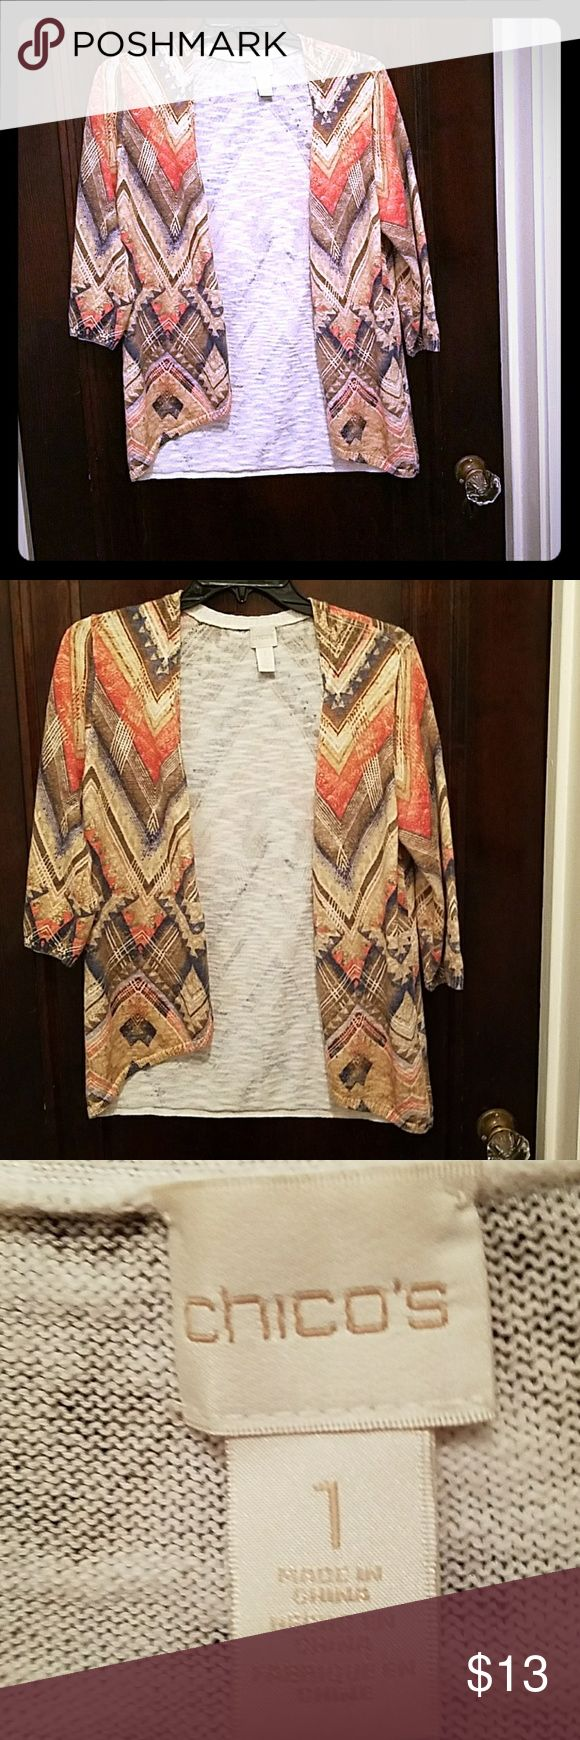 Chicos Tribal Cardigan Sweater Excellent condition. Size 1 Chicos tribal cardigan sweater. Literally an excellent condition. Chico's Sweaters Cardigans